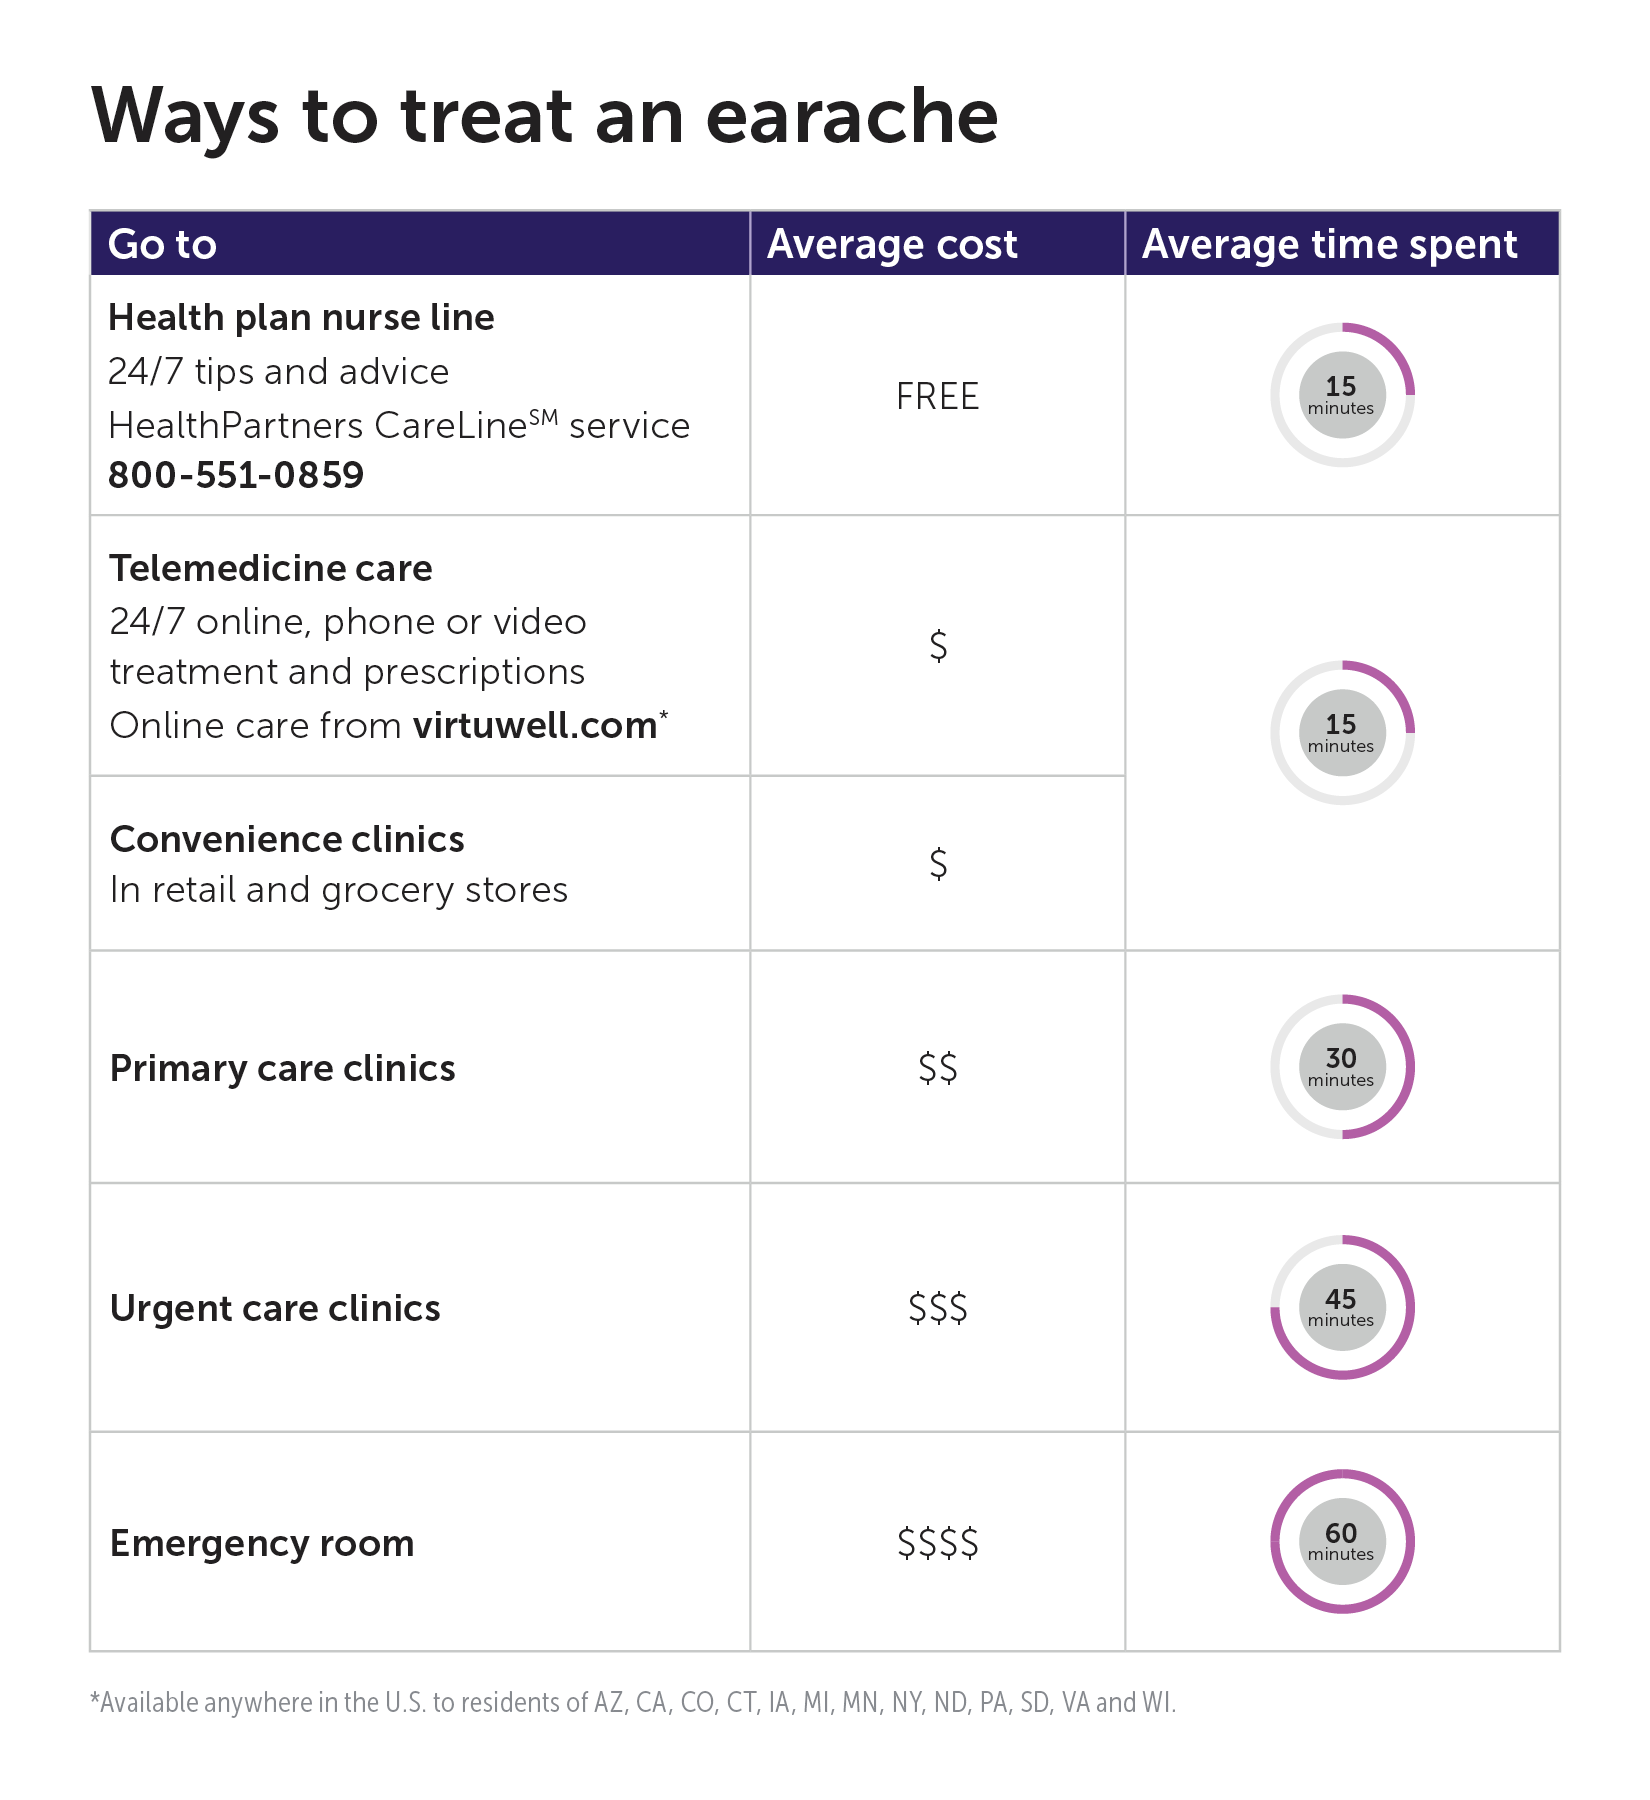 5 Routes to treat an earache